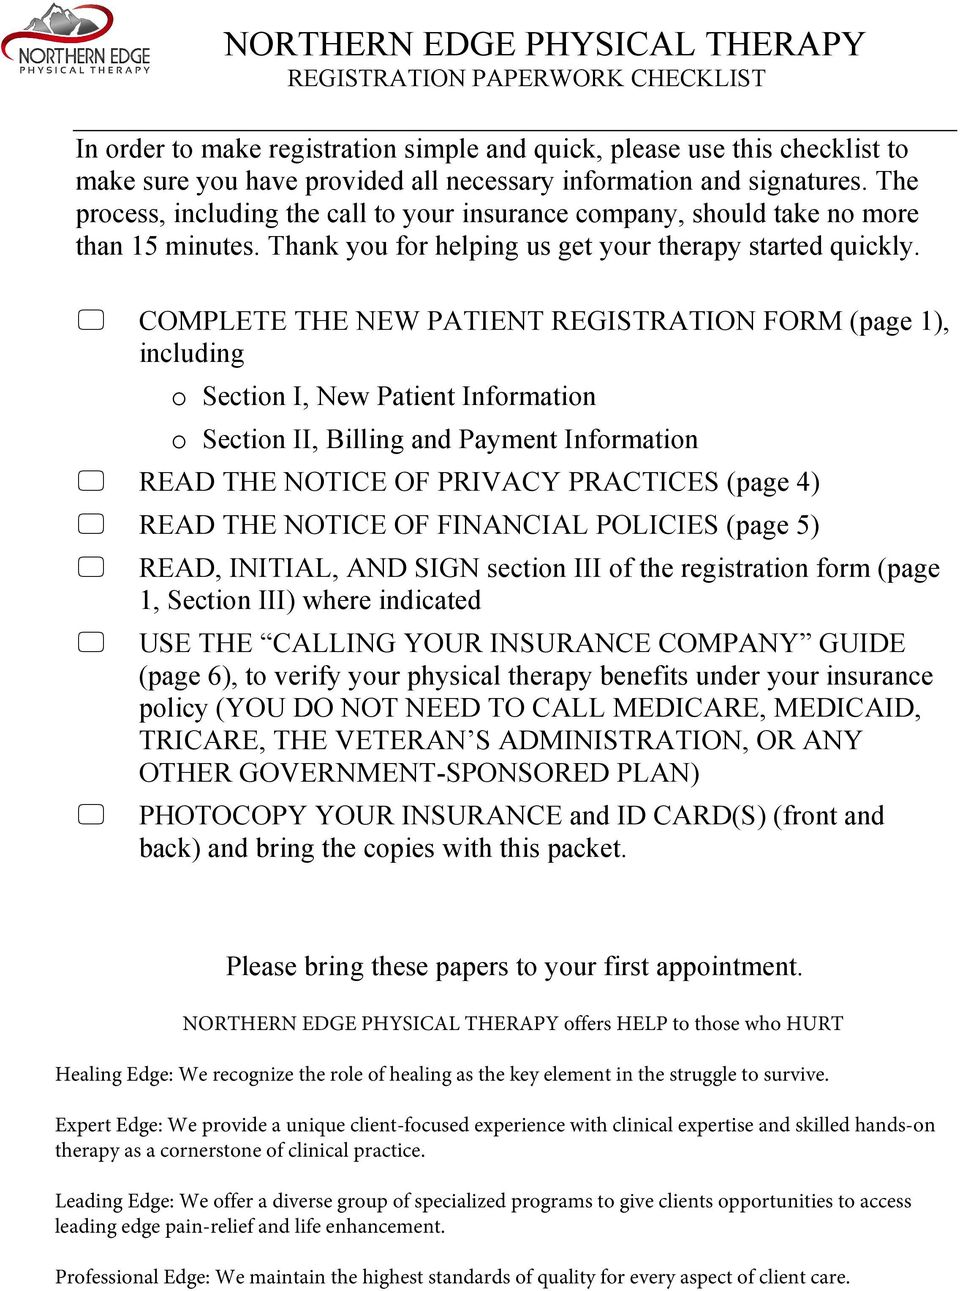 COMPLETE THE NEW PATIENT REGISTRATION FORM (page 1), including o Section I, New Patient Information o Section II, Billing and Payment Information READ THE NOTICE OF PRIVACY PRACTICES (page 4) READ